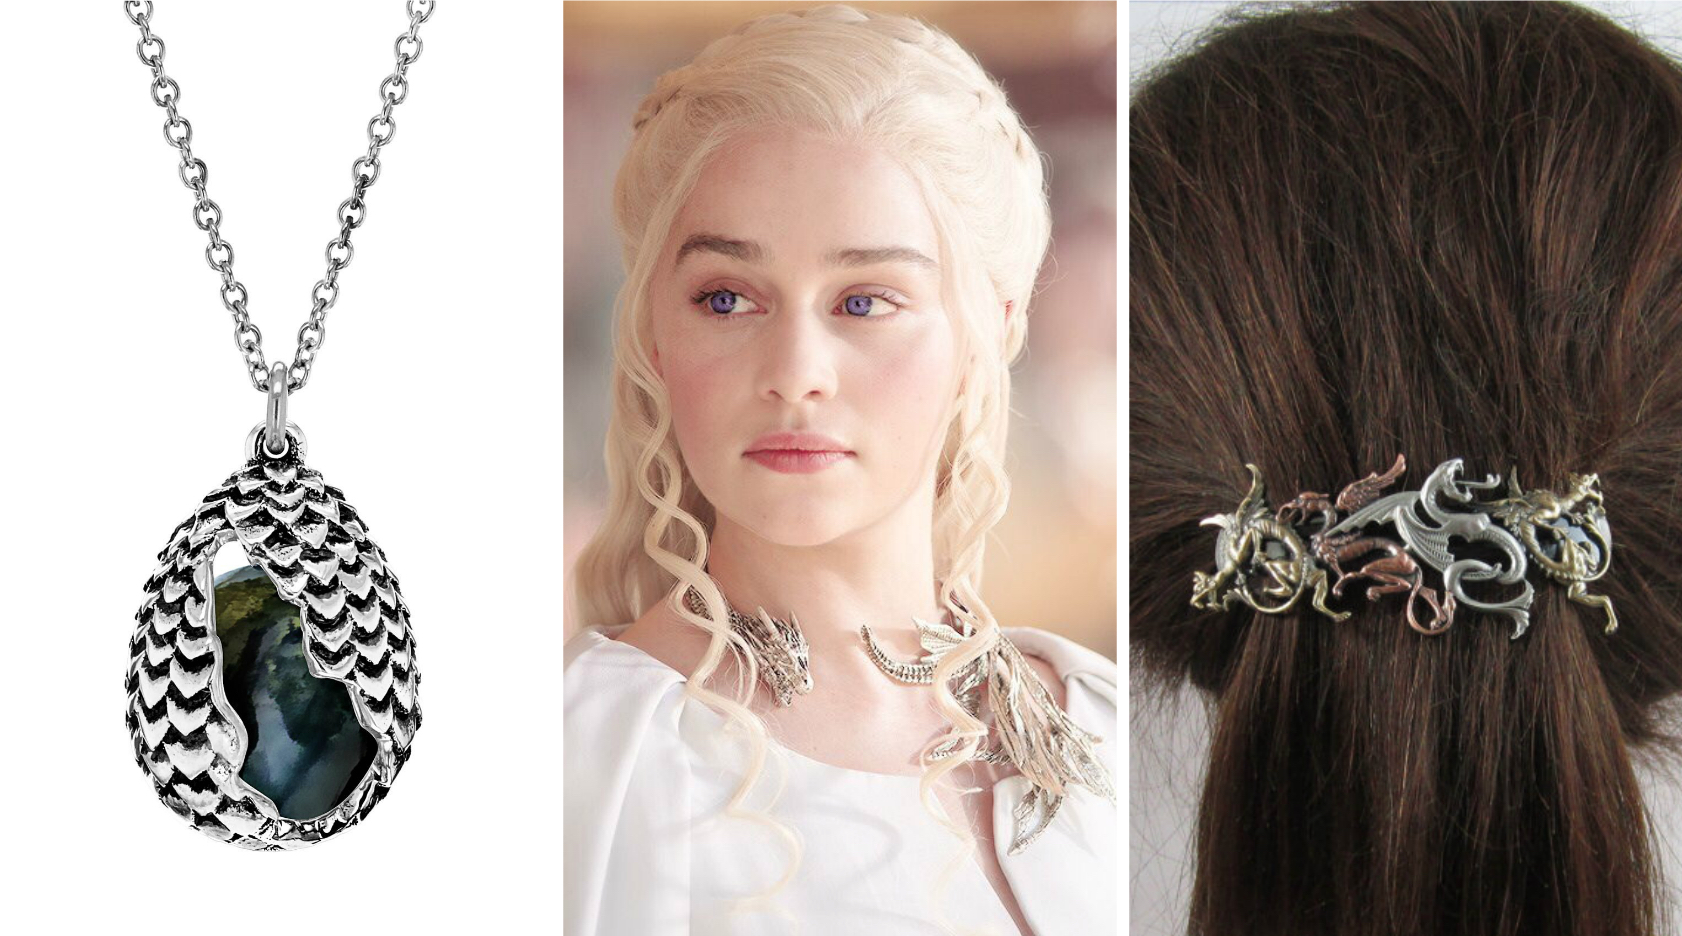 13 pieces of jewelry that will help you channel your inner mother of dragons